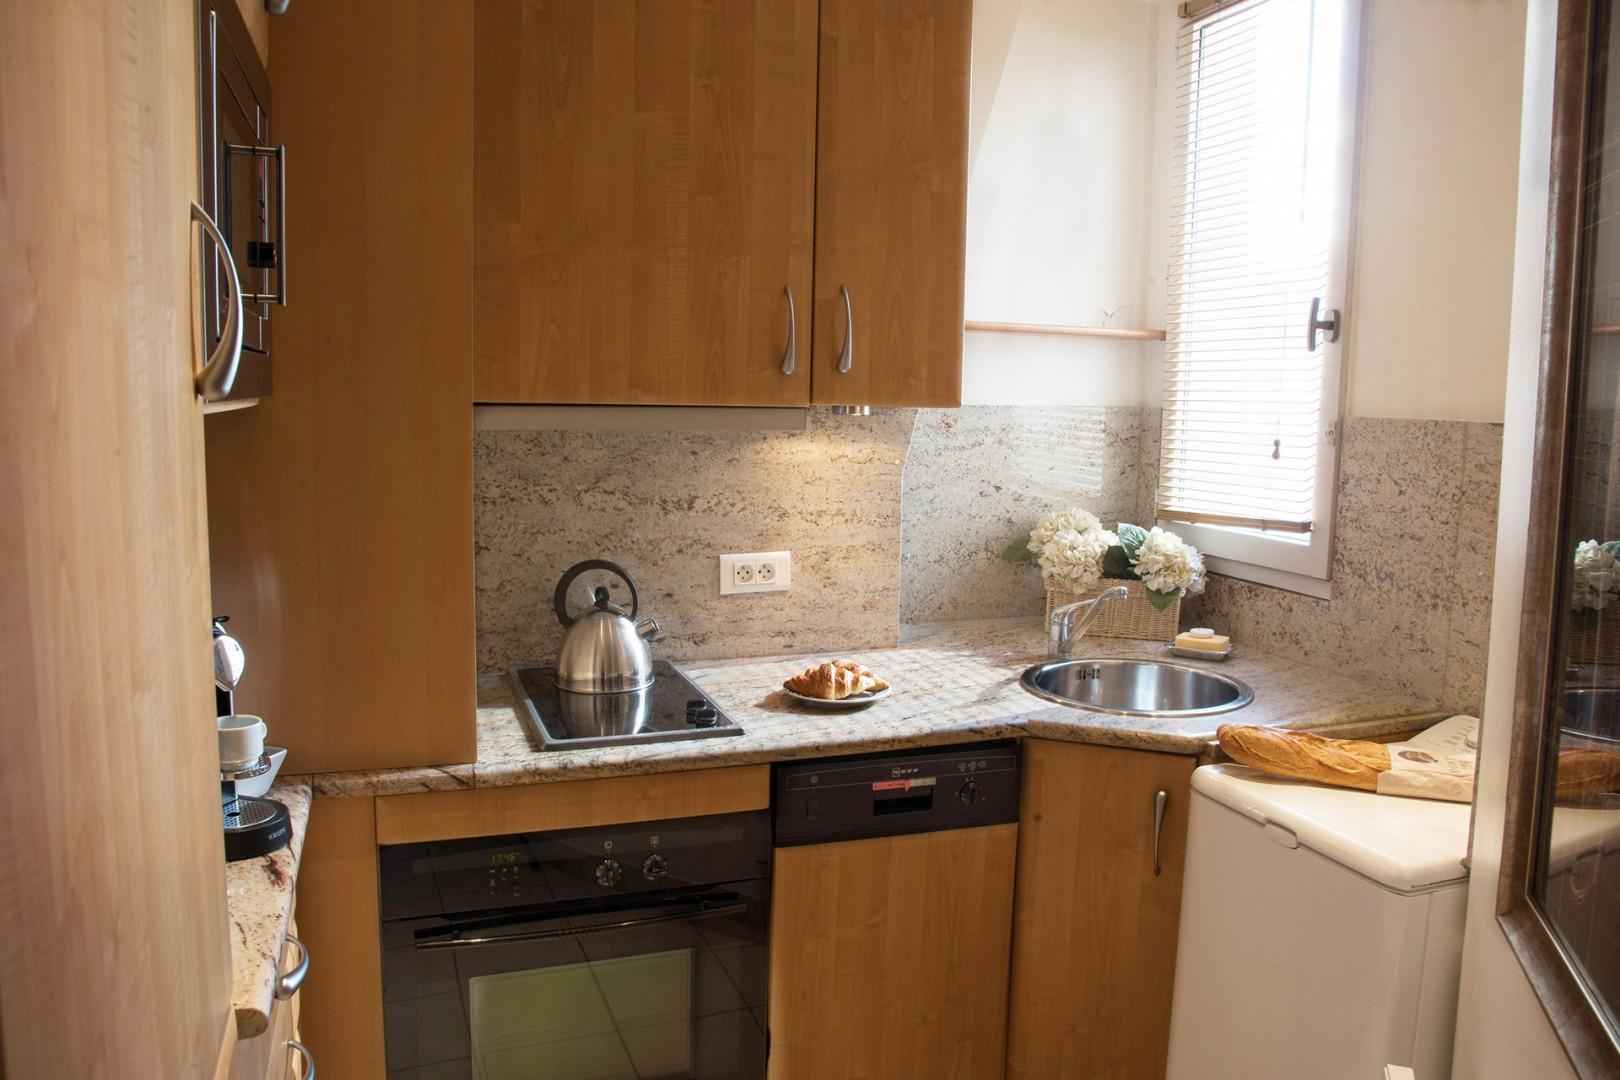 The fully equipped kitchen has everything you need to cook at home.